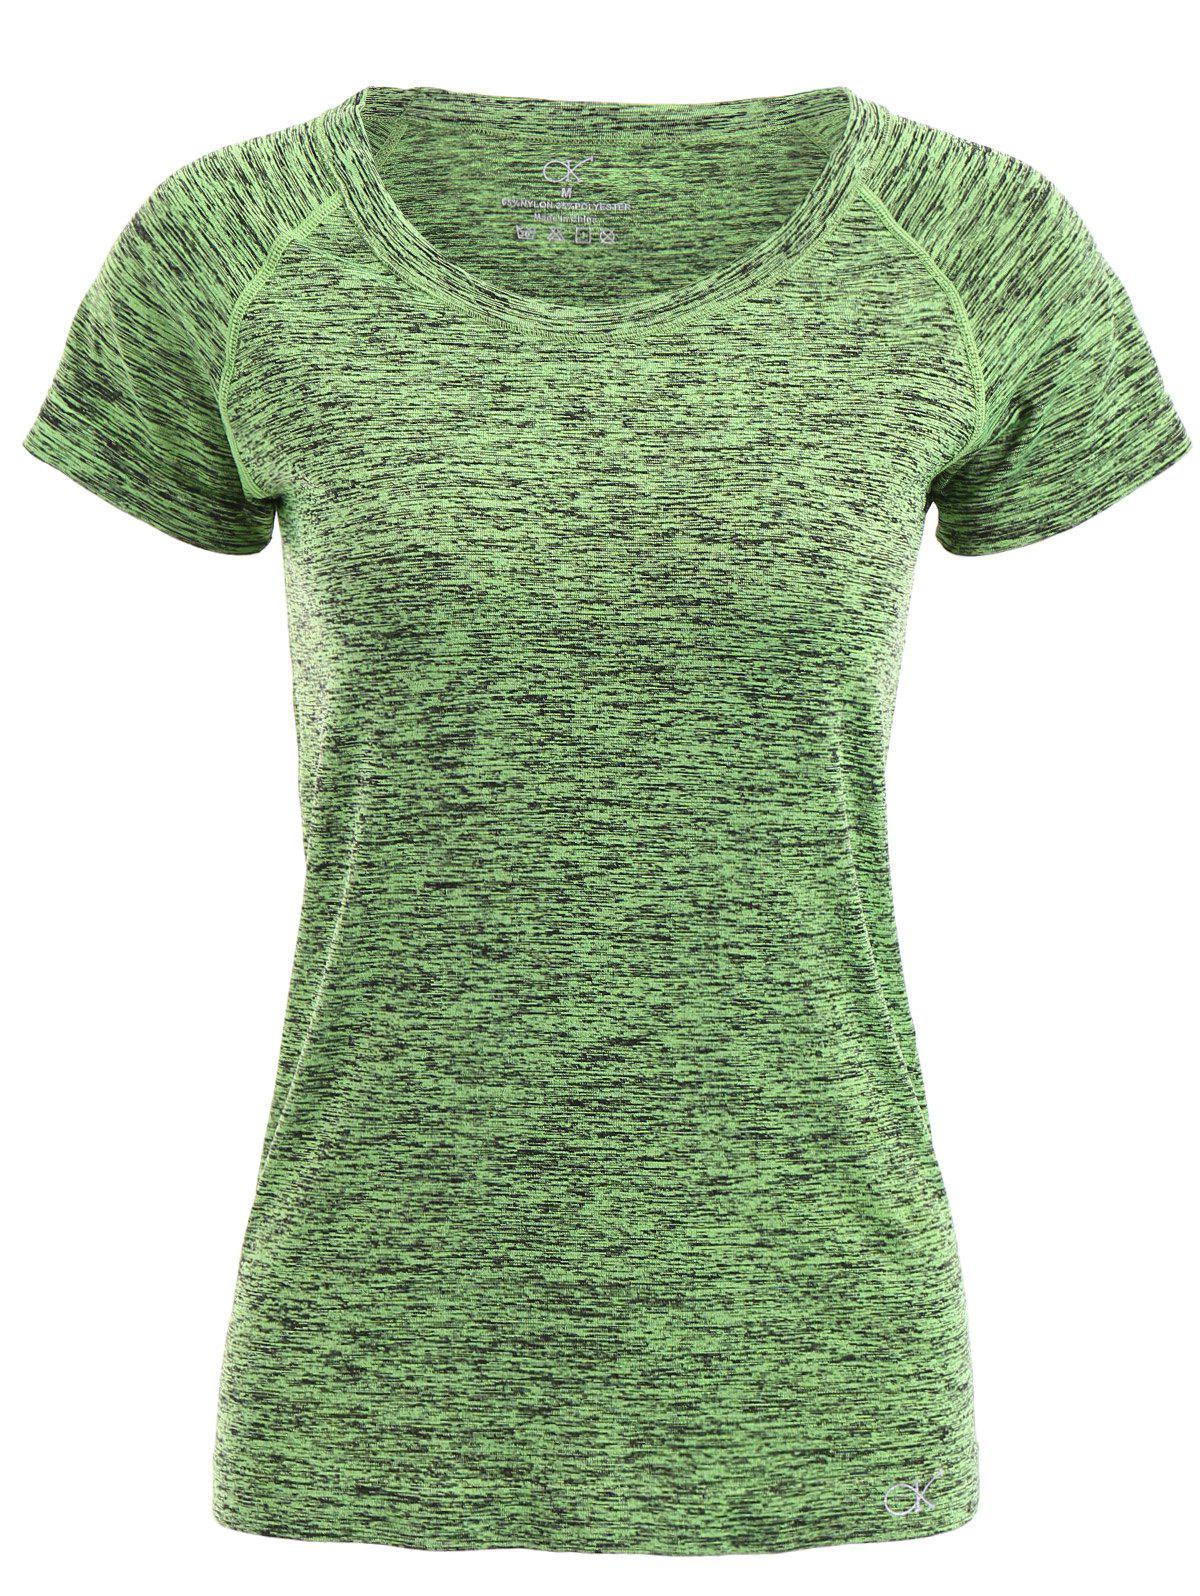 Trendy Jewel Neck Candy Color Short Sleeve Sport T-Shirt For Women